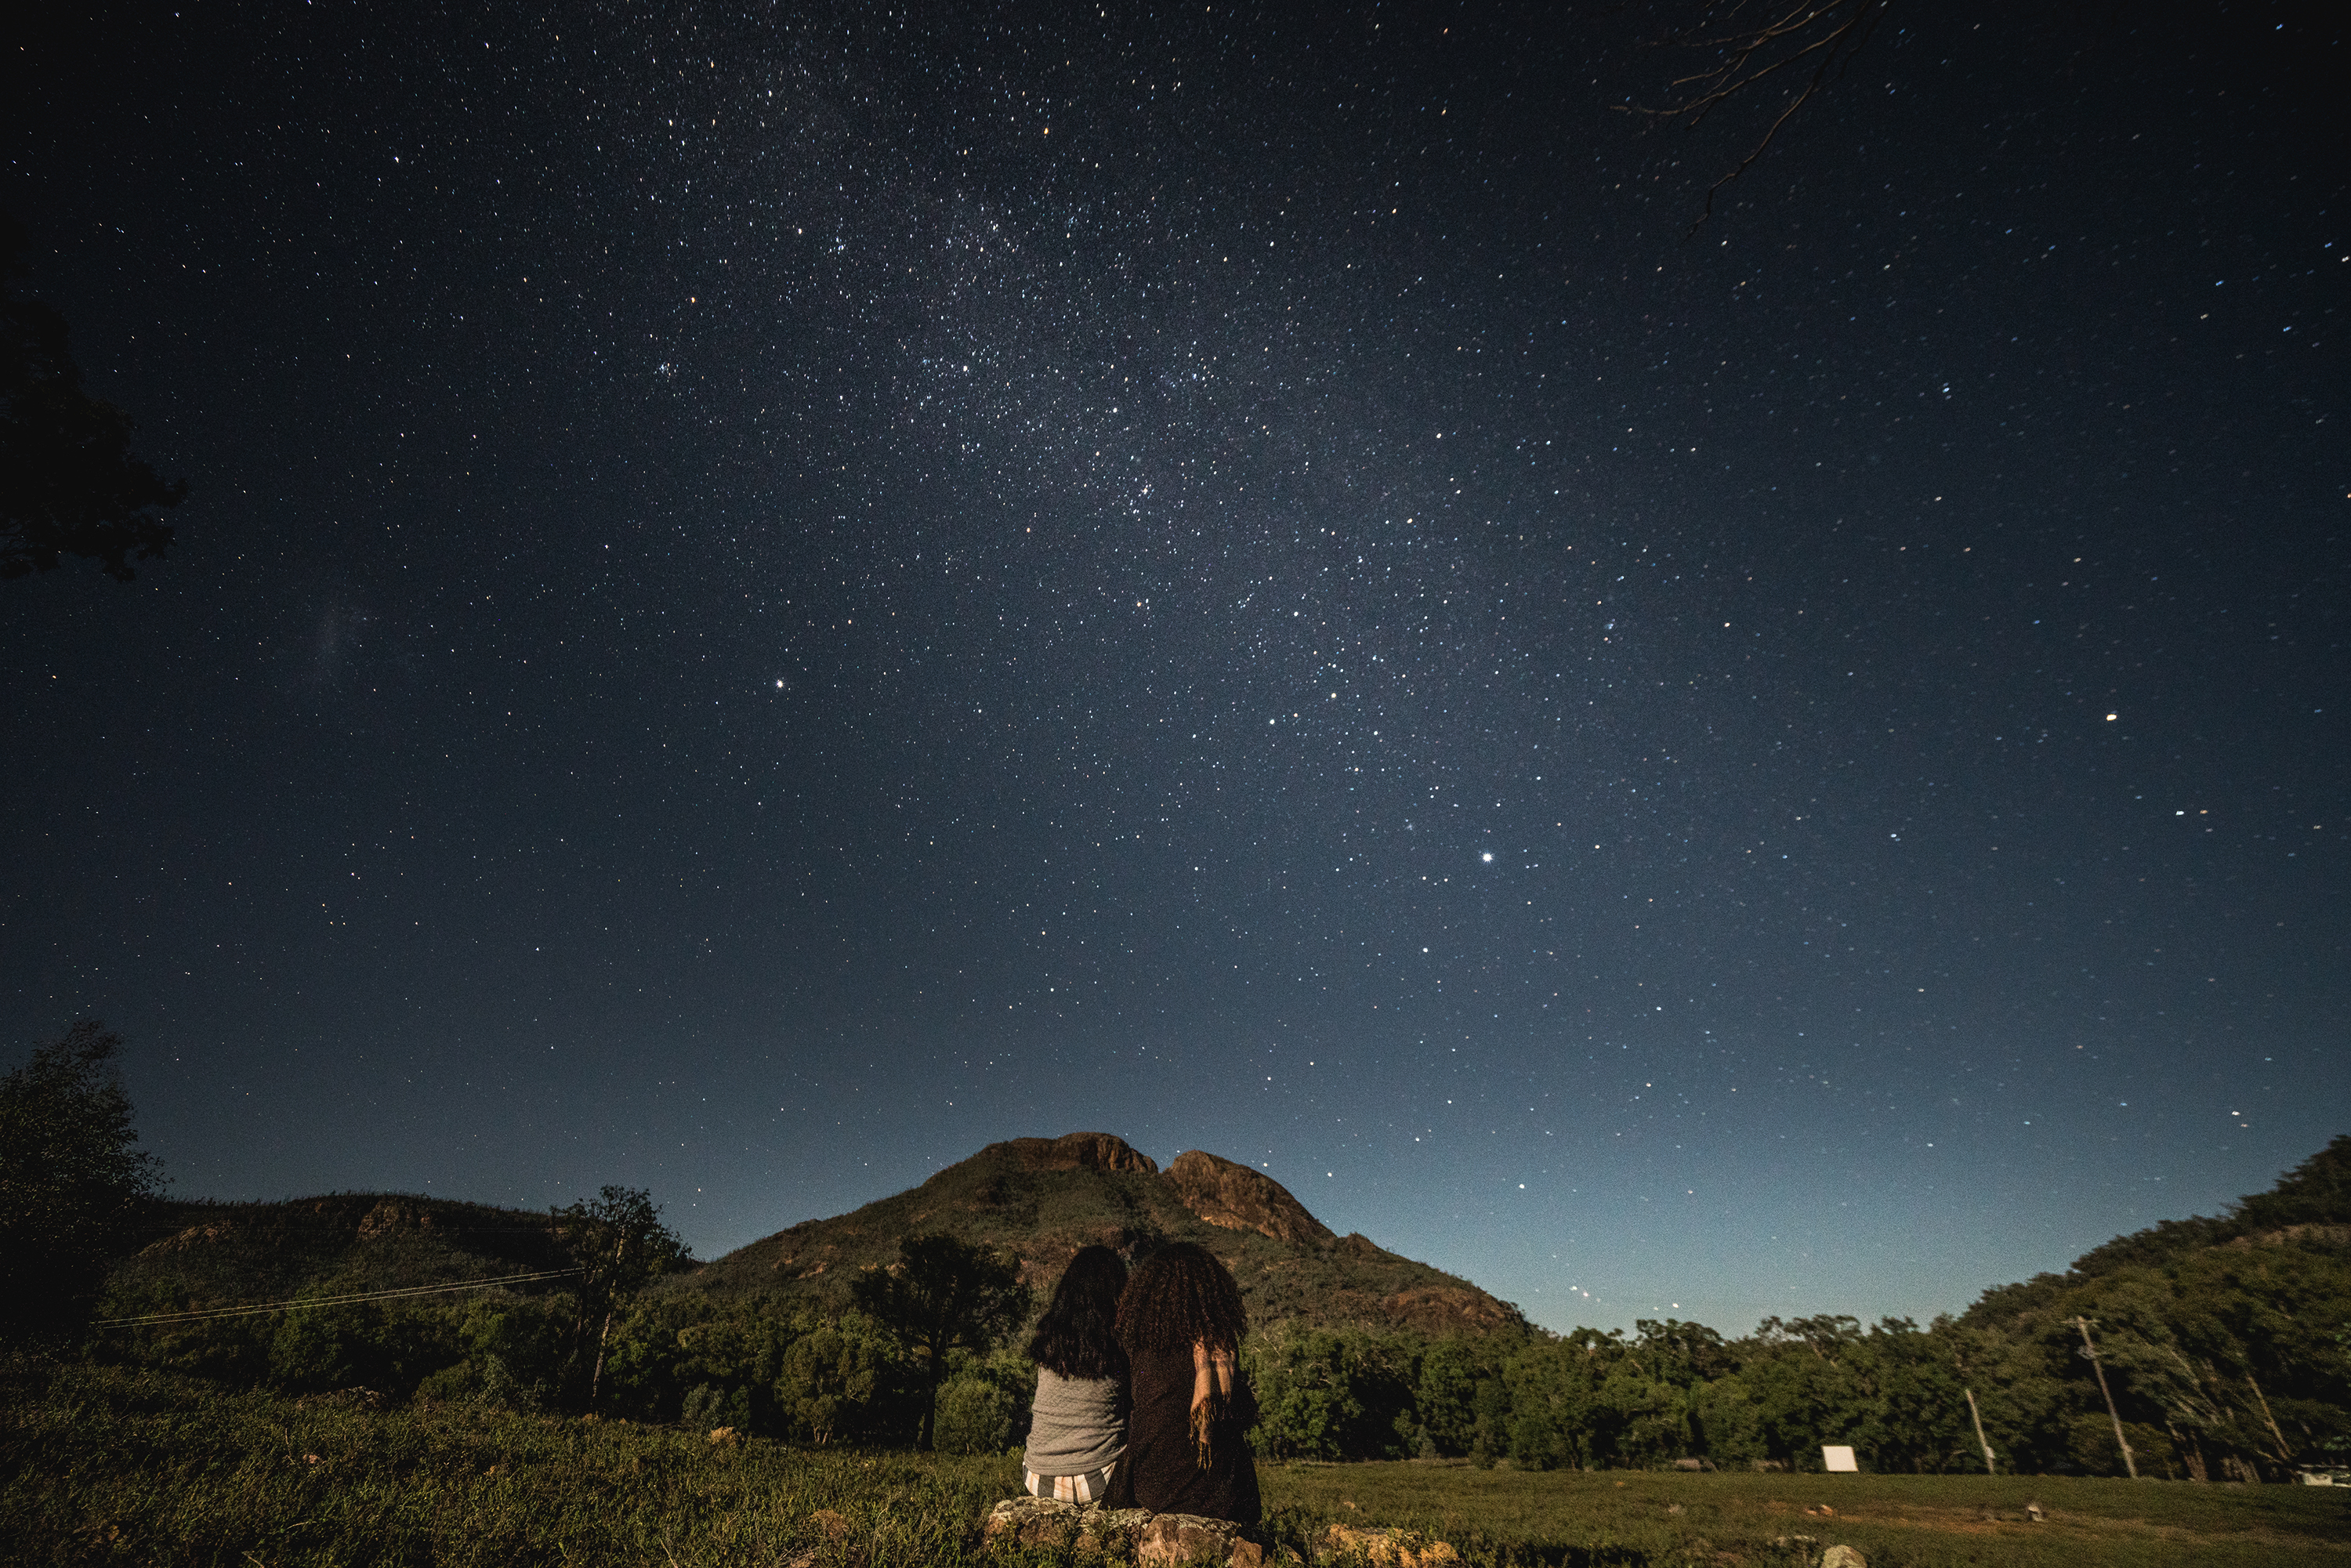 Two females sitting looking at the night sky in Warrumbungles National Park